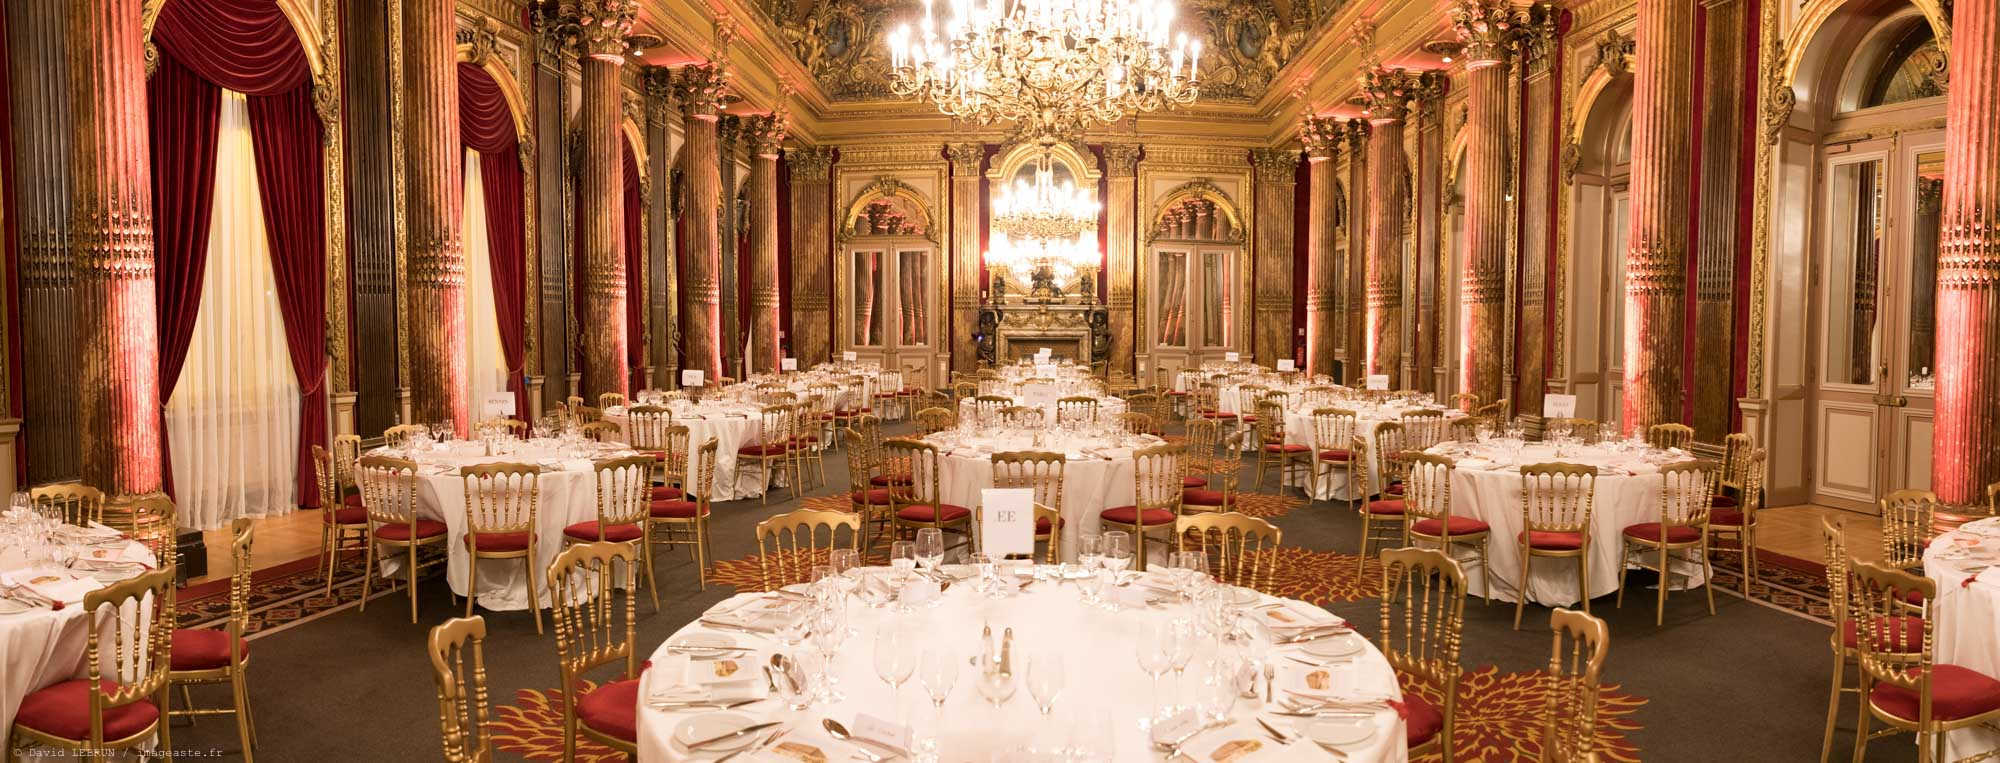 Salle Imperiale